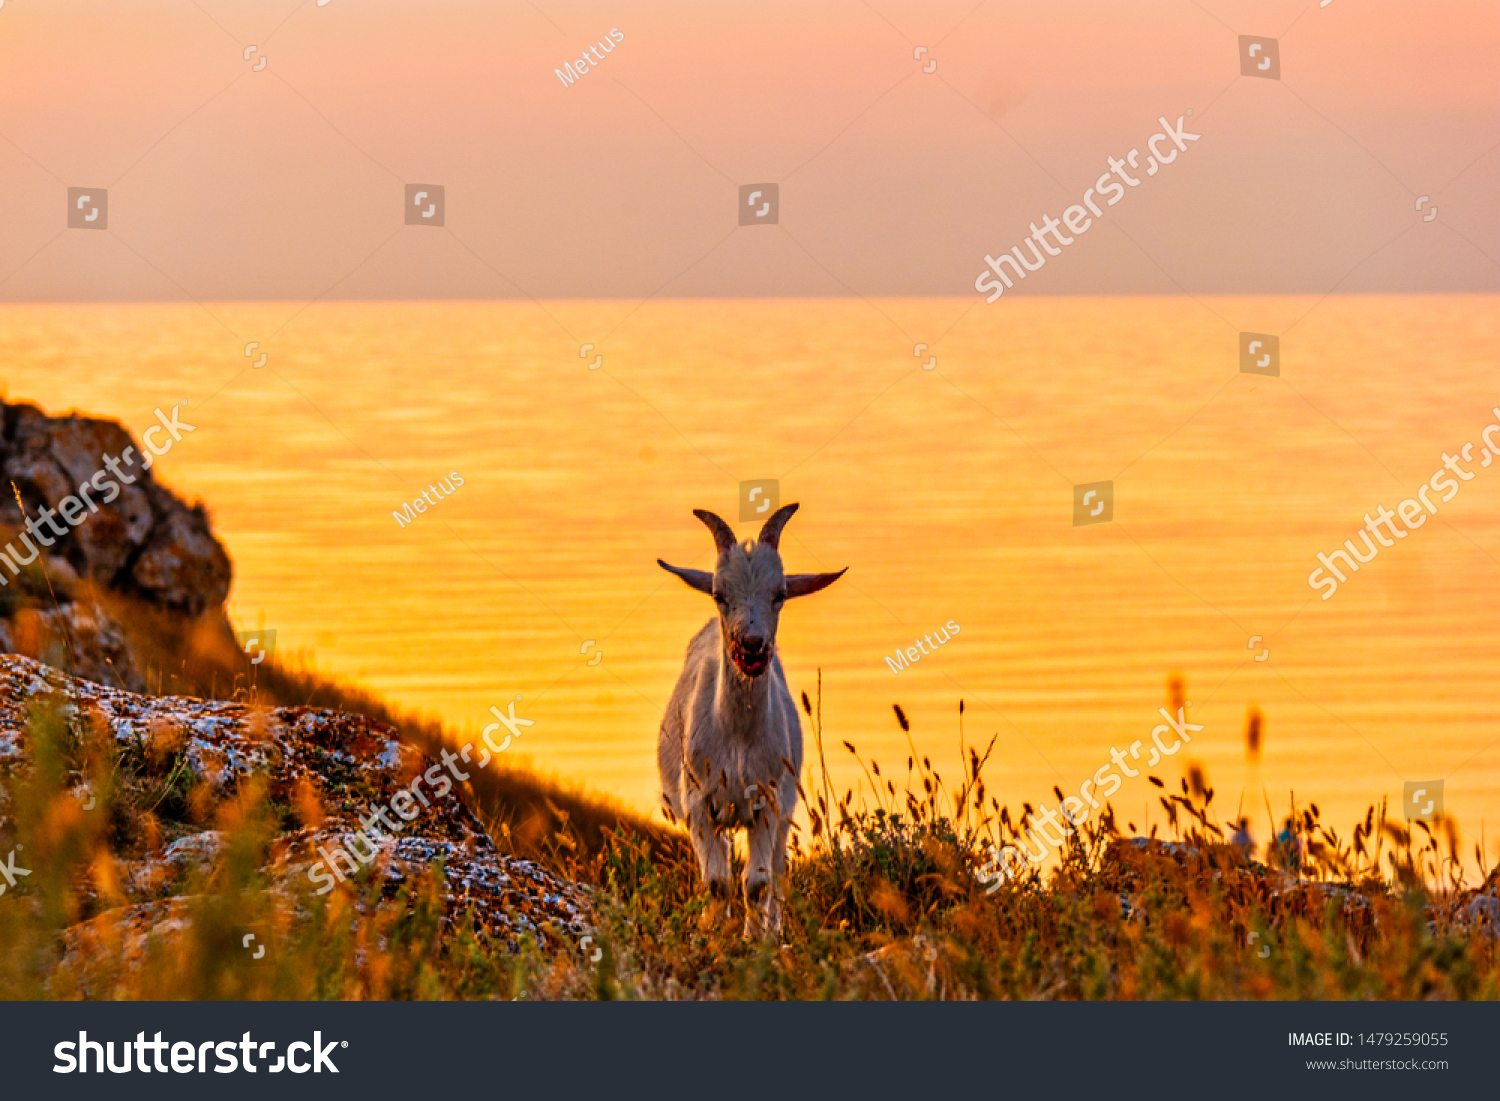 stock-photo-front-view-of-the-goat-stand